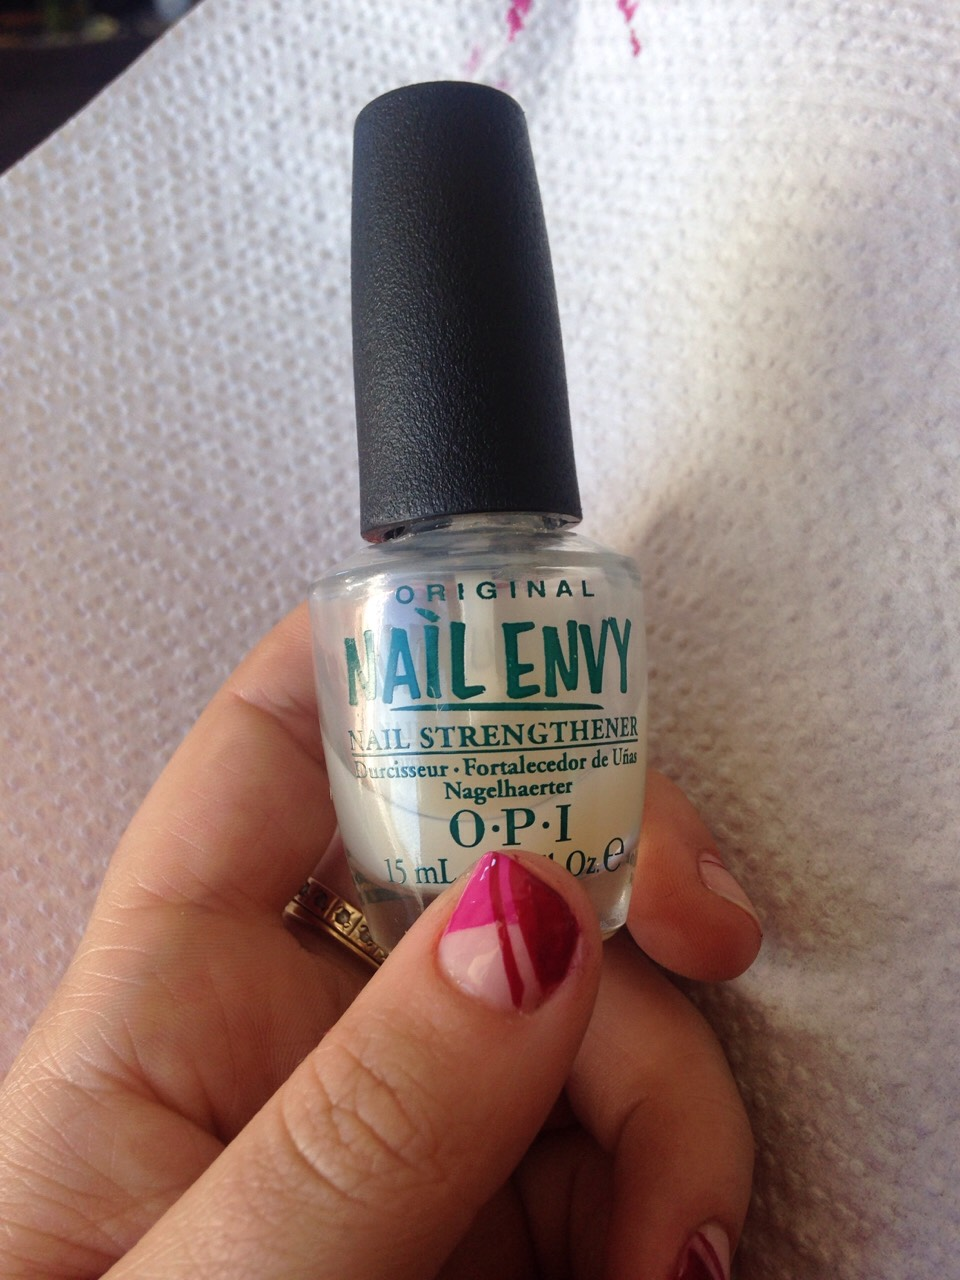 Top and base coat. I cheated and used OPI nail strengthener for both.